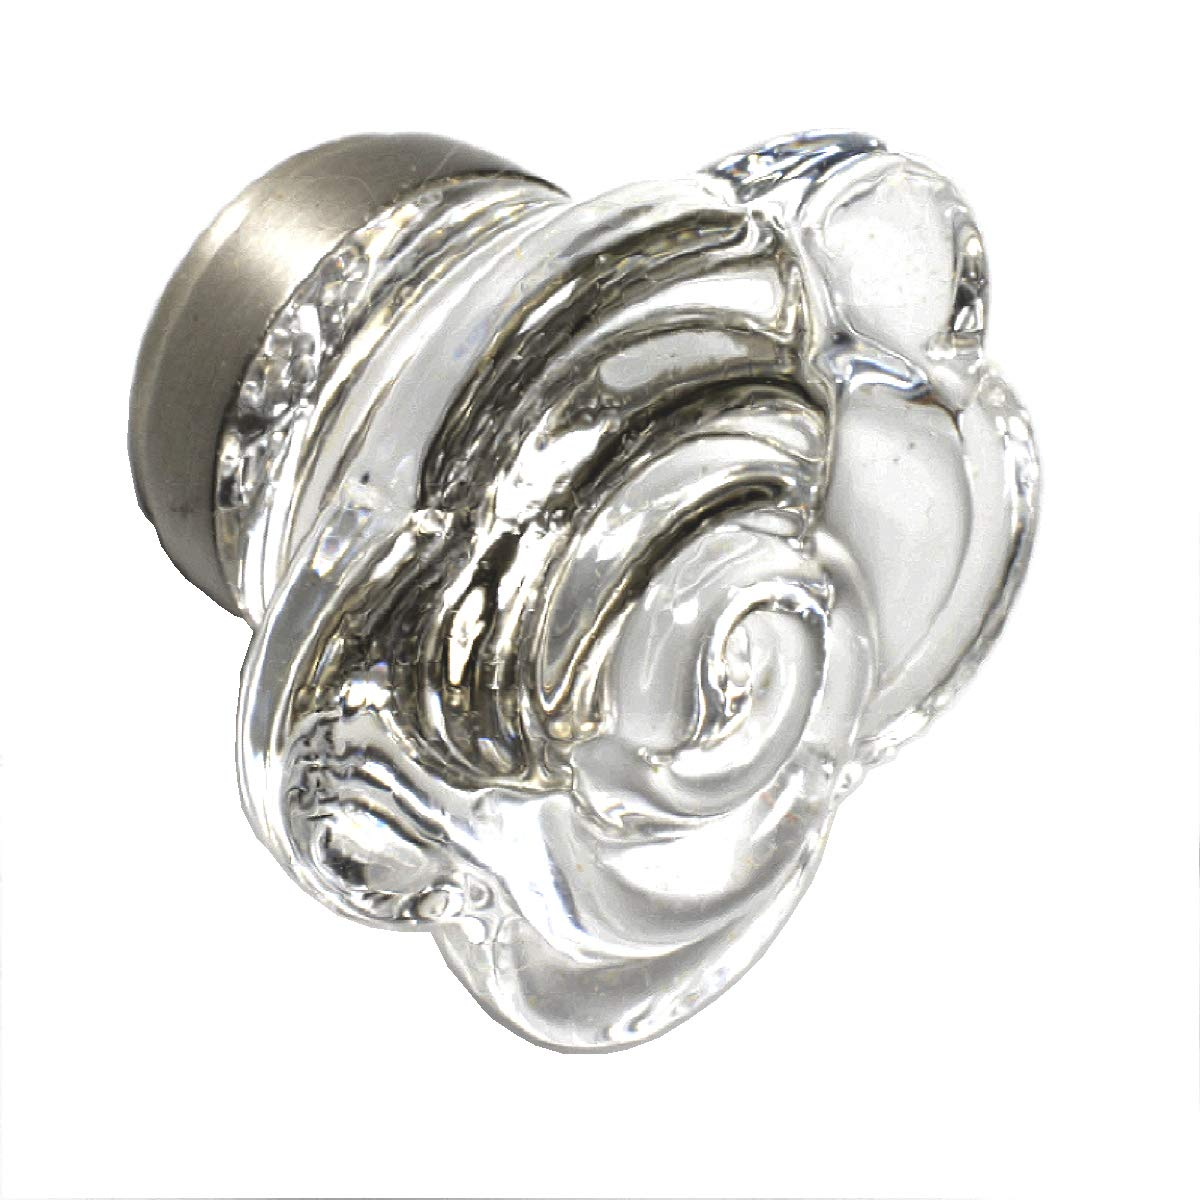 Decorative Cabinet Knobs Clear Glass Drawer Pulls Dresser and Handle T84-12 Pack